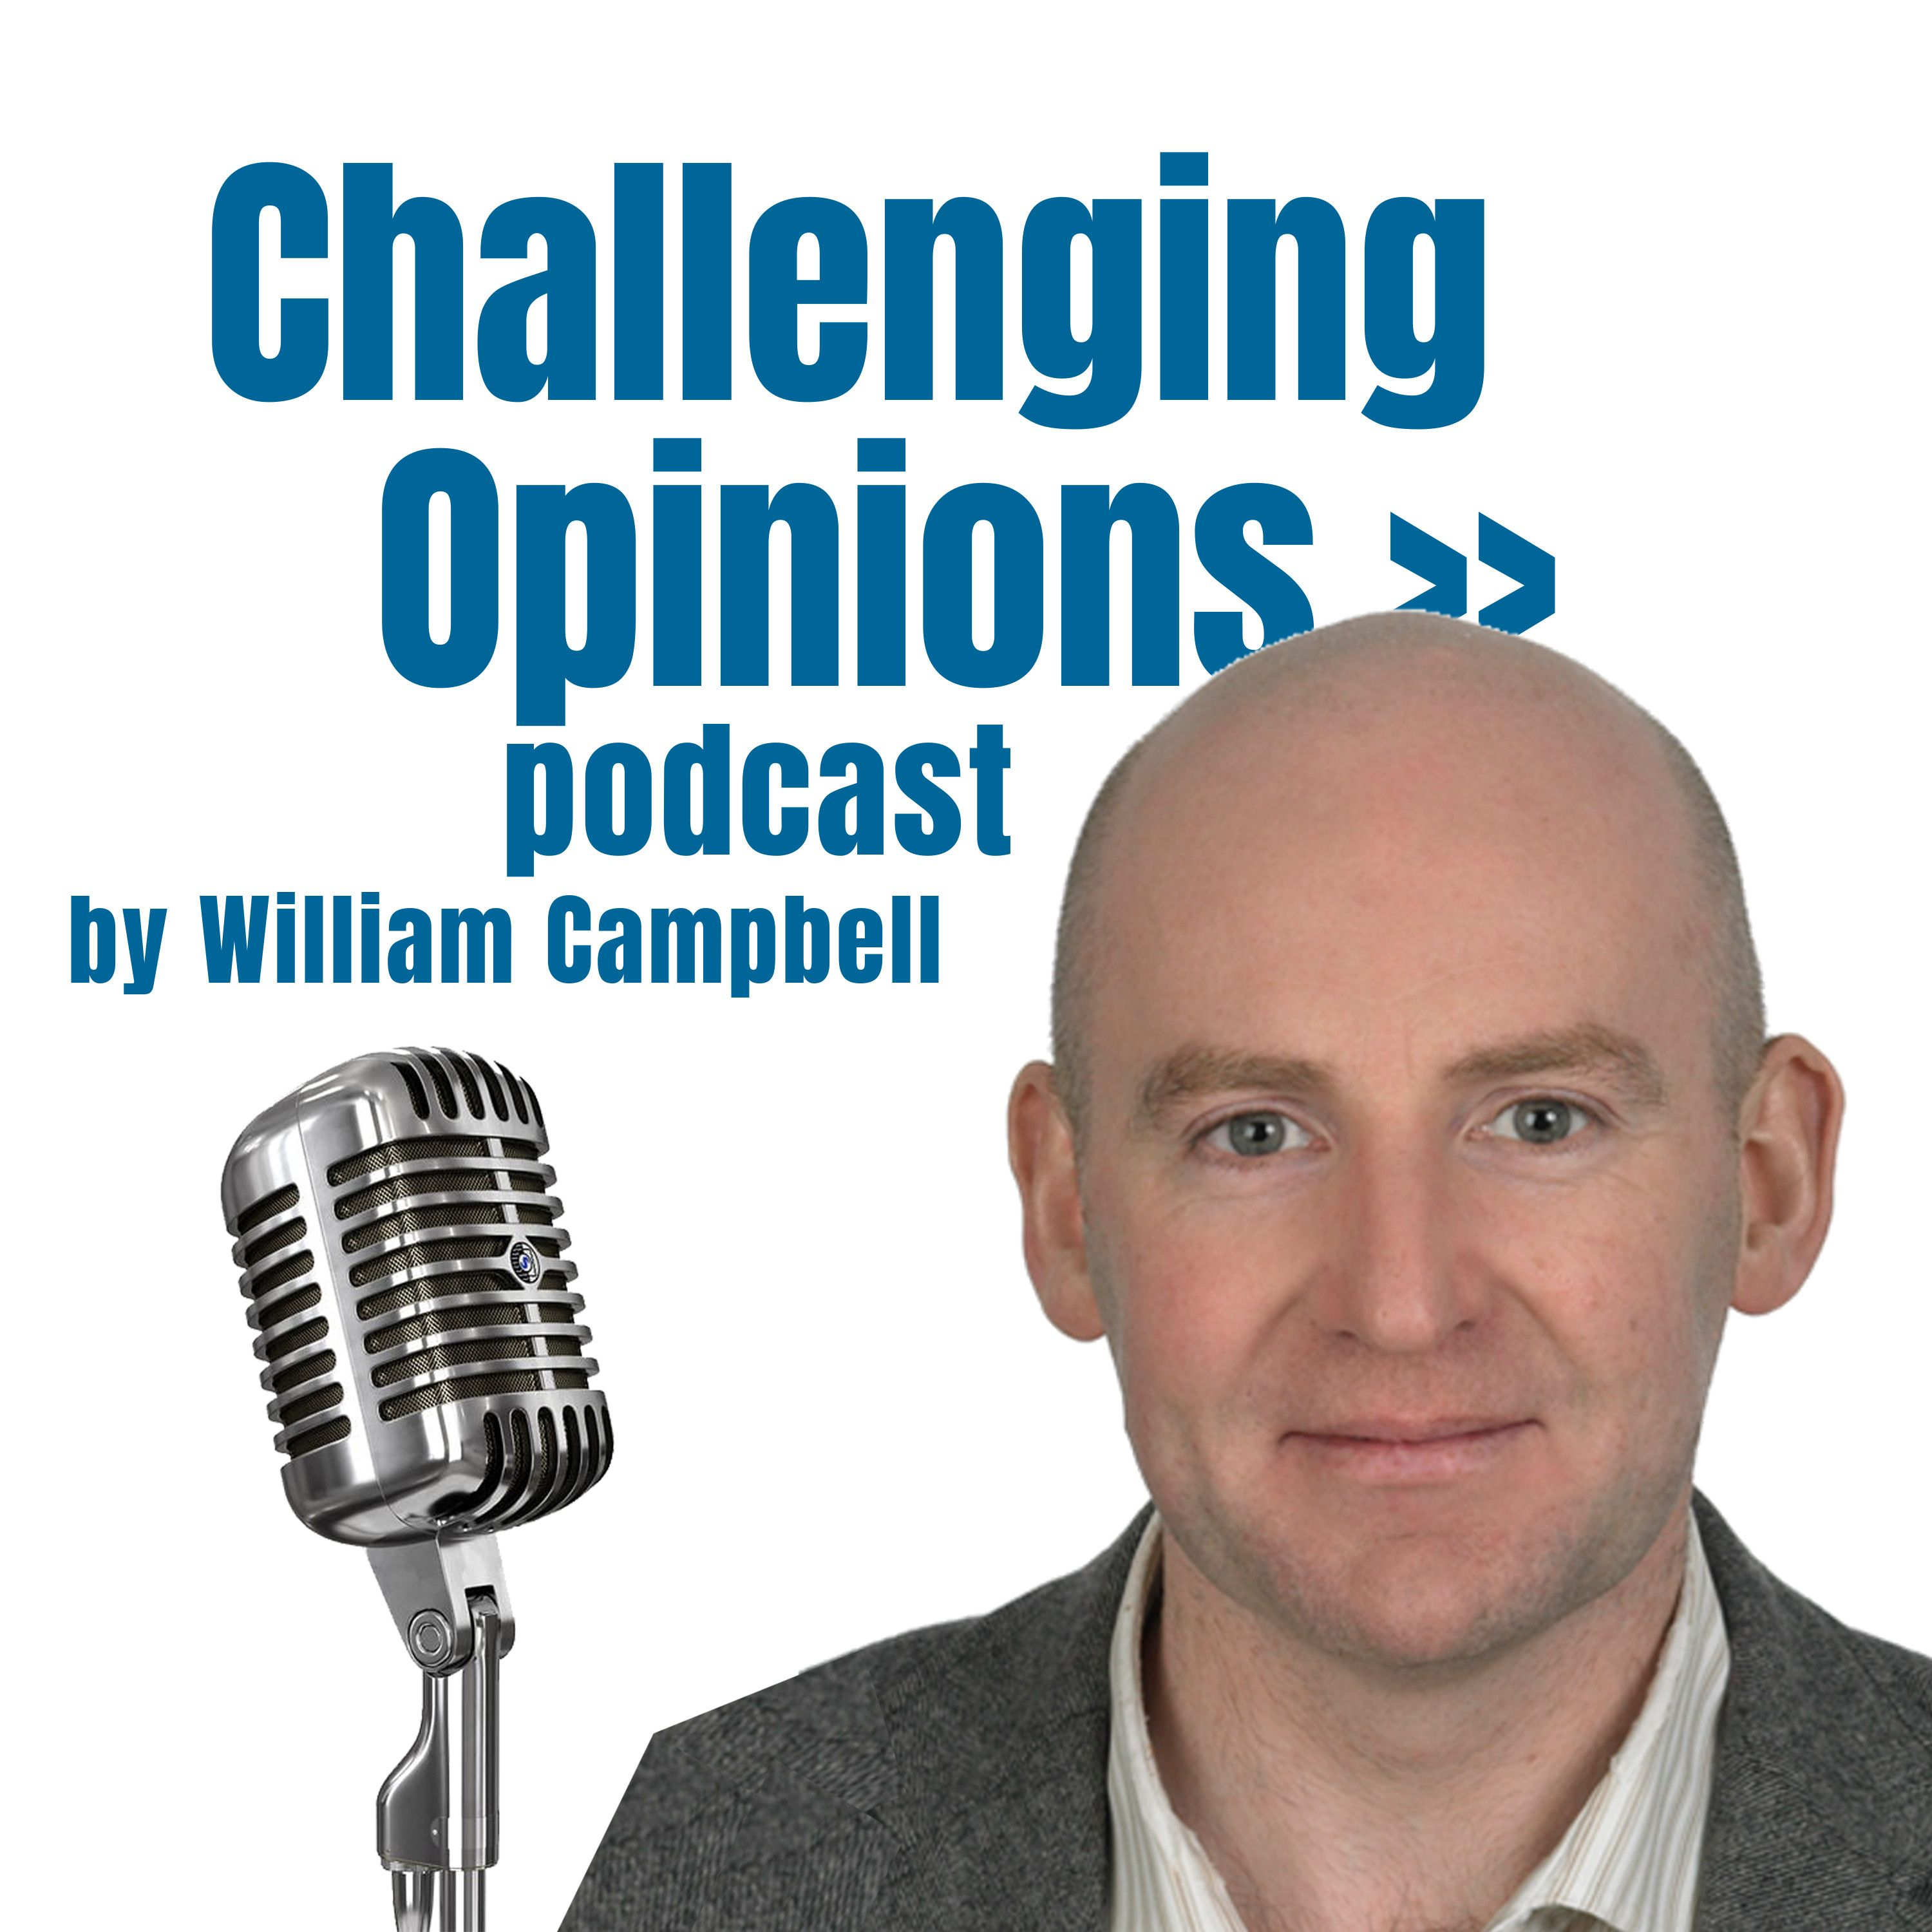 Challenging Opinions >>